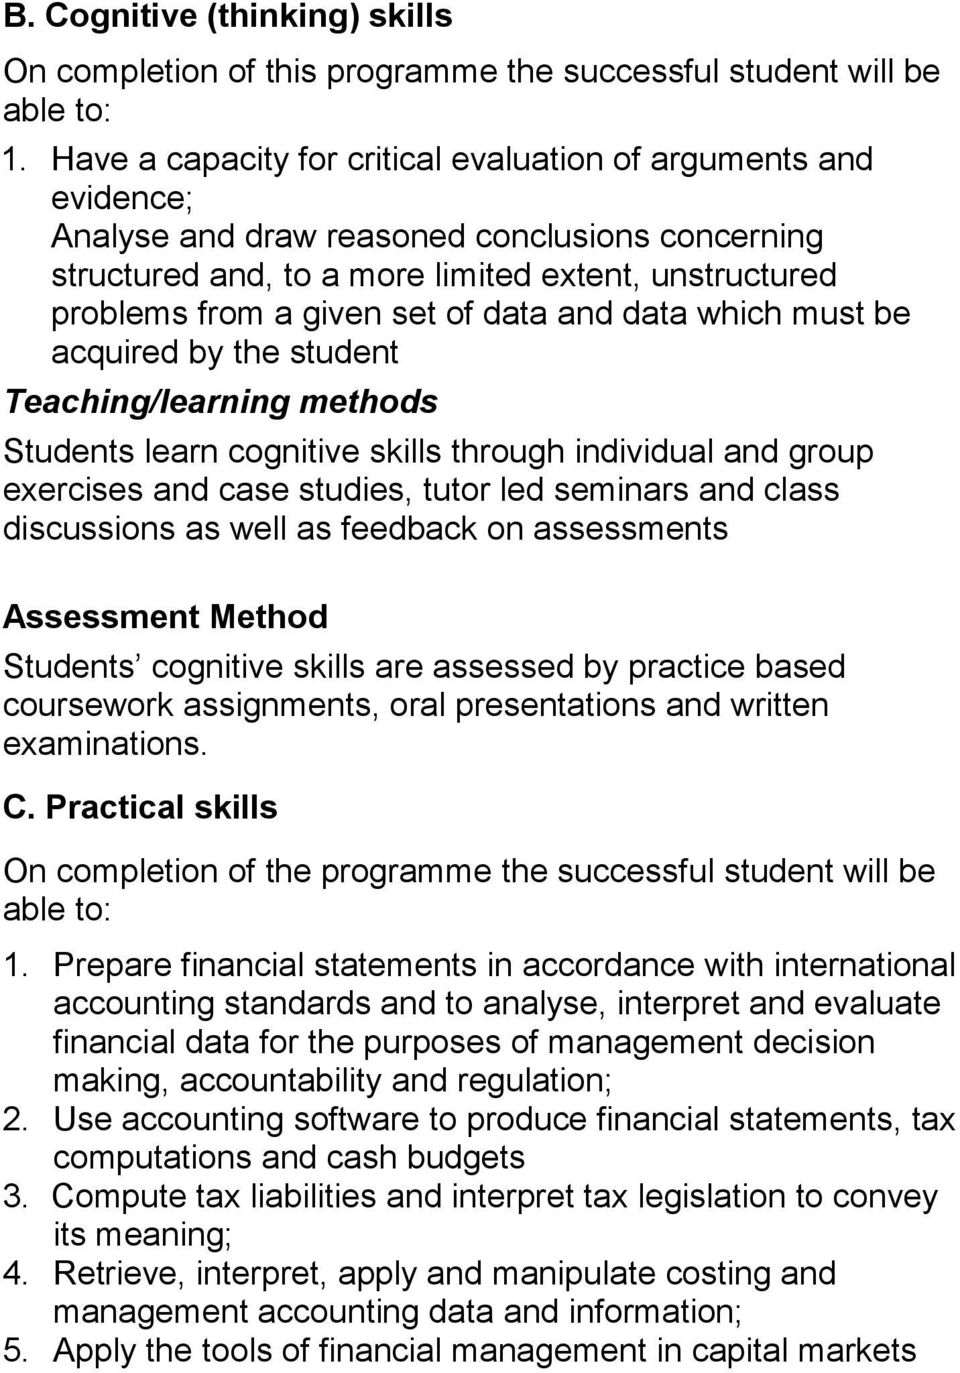 data and data which must be acquired by the student eaching/learning methods Students learn cognitive skills through individual and group exercises and case studies, tutor led seminars and class